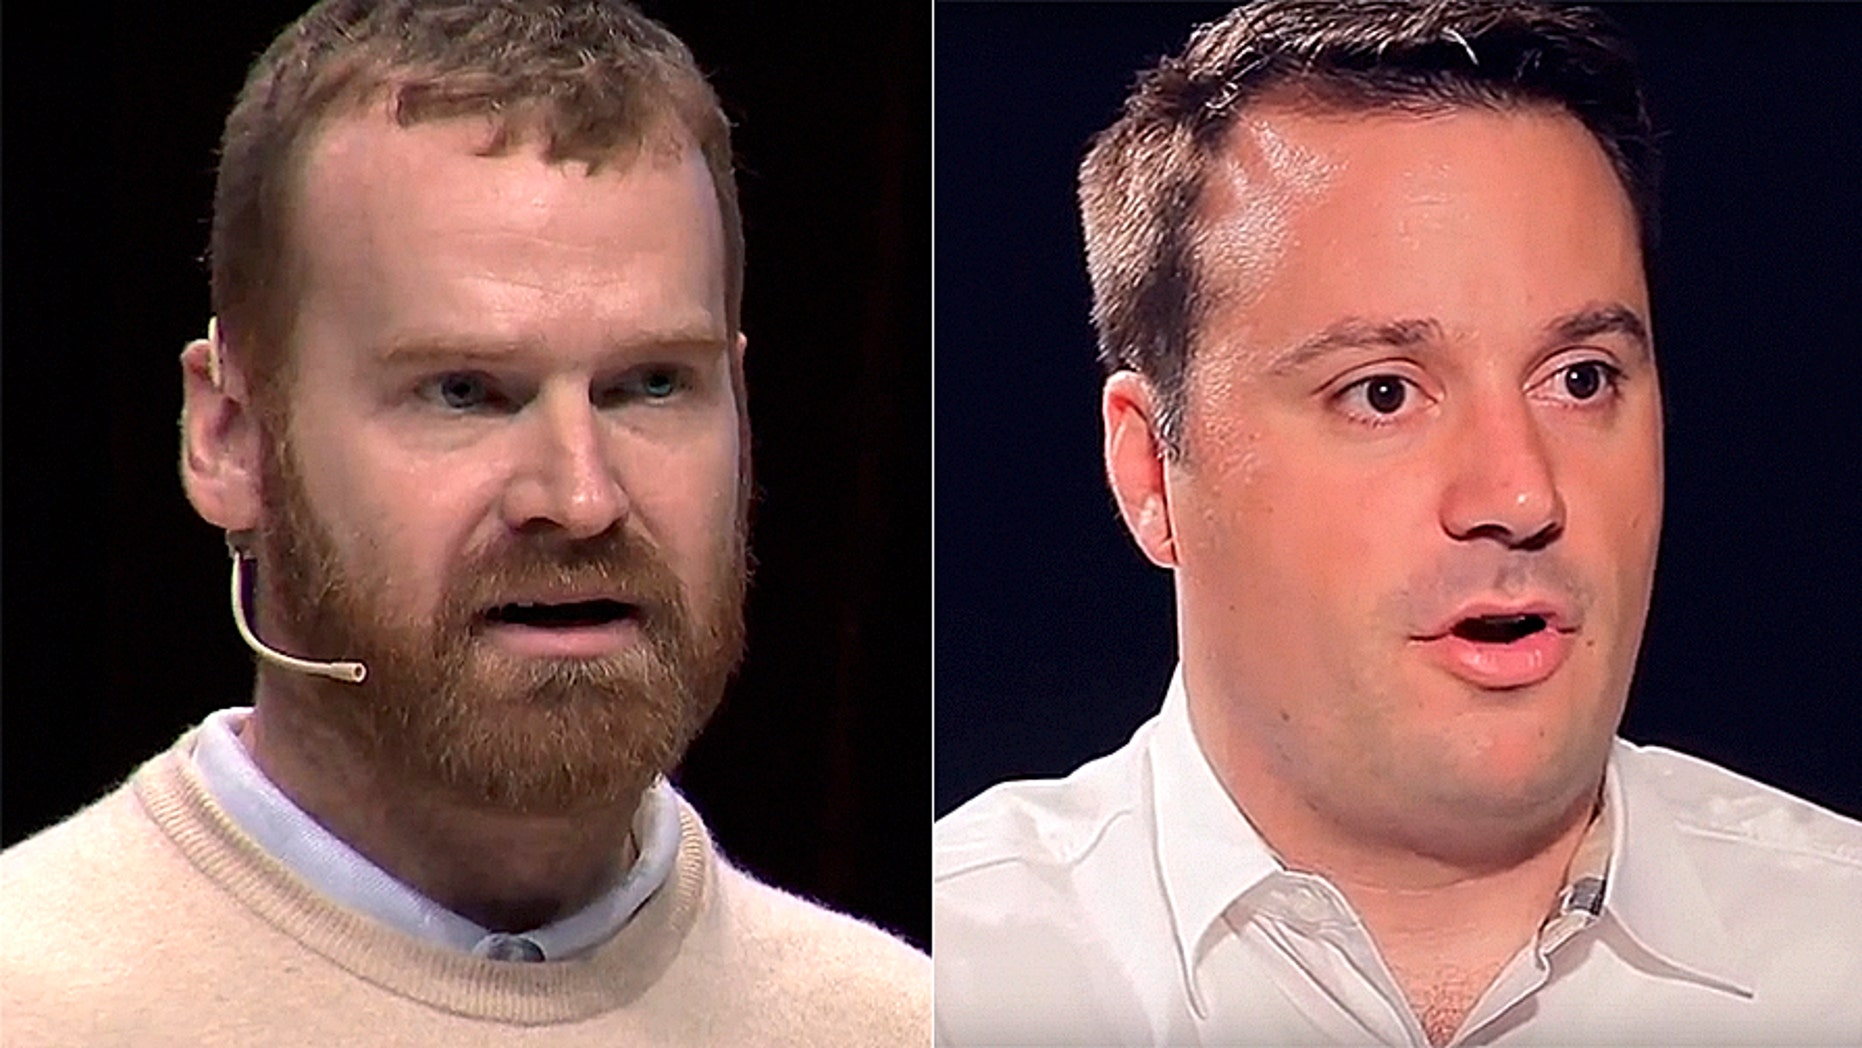 Vice's president Andrew Creighton, left, and chief digital officer Mike Germano have been suspended following sexual misconduct allegations.